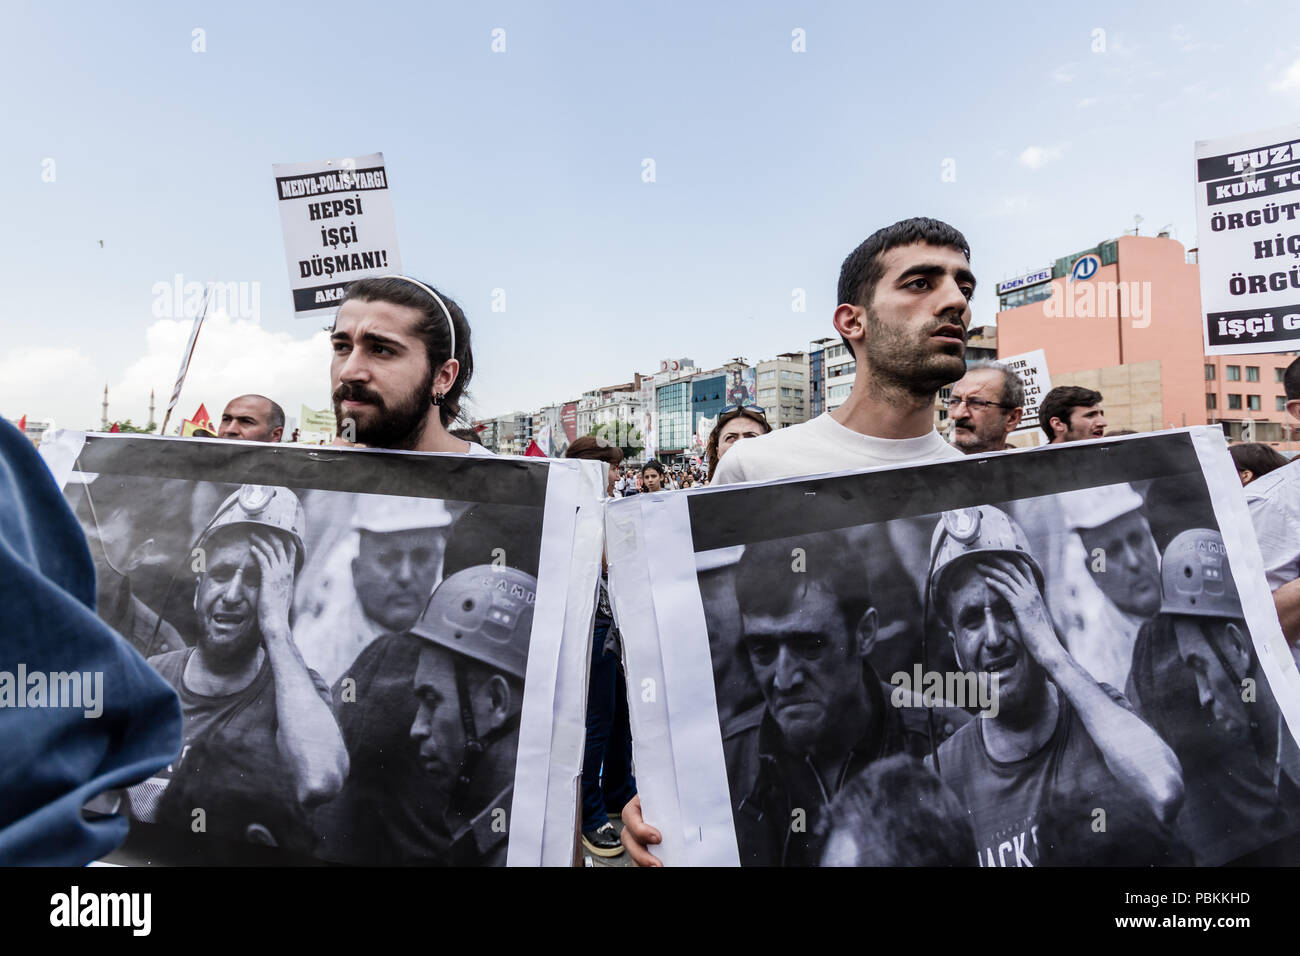 ISTANBUL, TURKEY - MAY 25, 2014: Protests against subcontractor system after Soma mine disaster - Stock Image